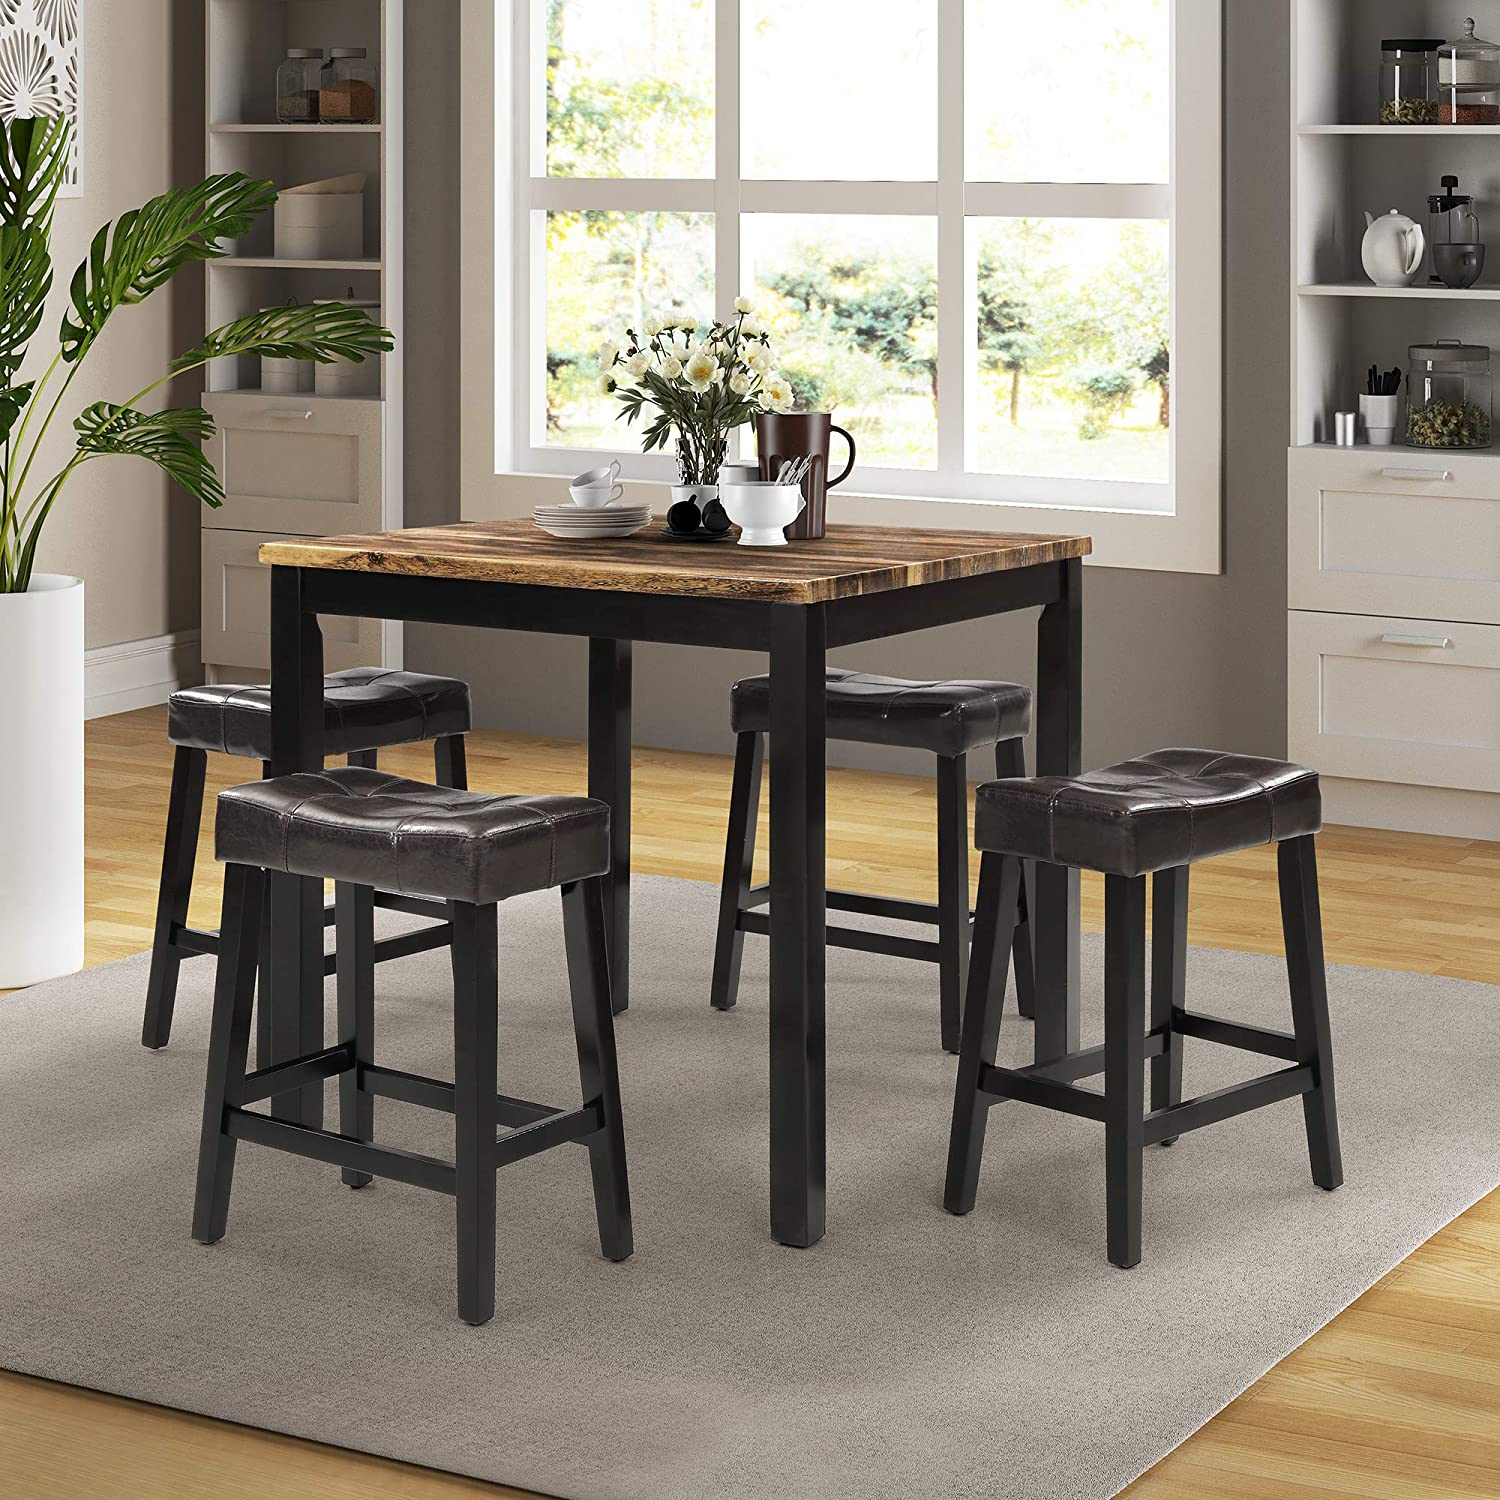 LOKESI Kitchen Table Set, 5 Pieces Faux Marble Top Counter Height Dining  Table Set with 4 Stools (Brown)